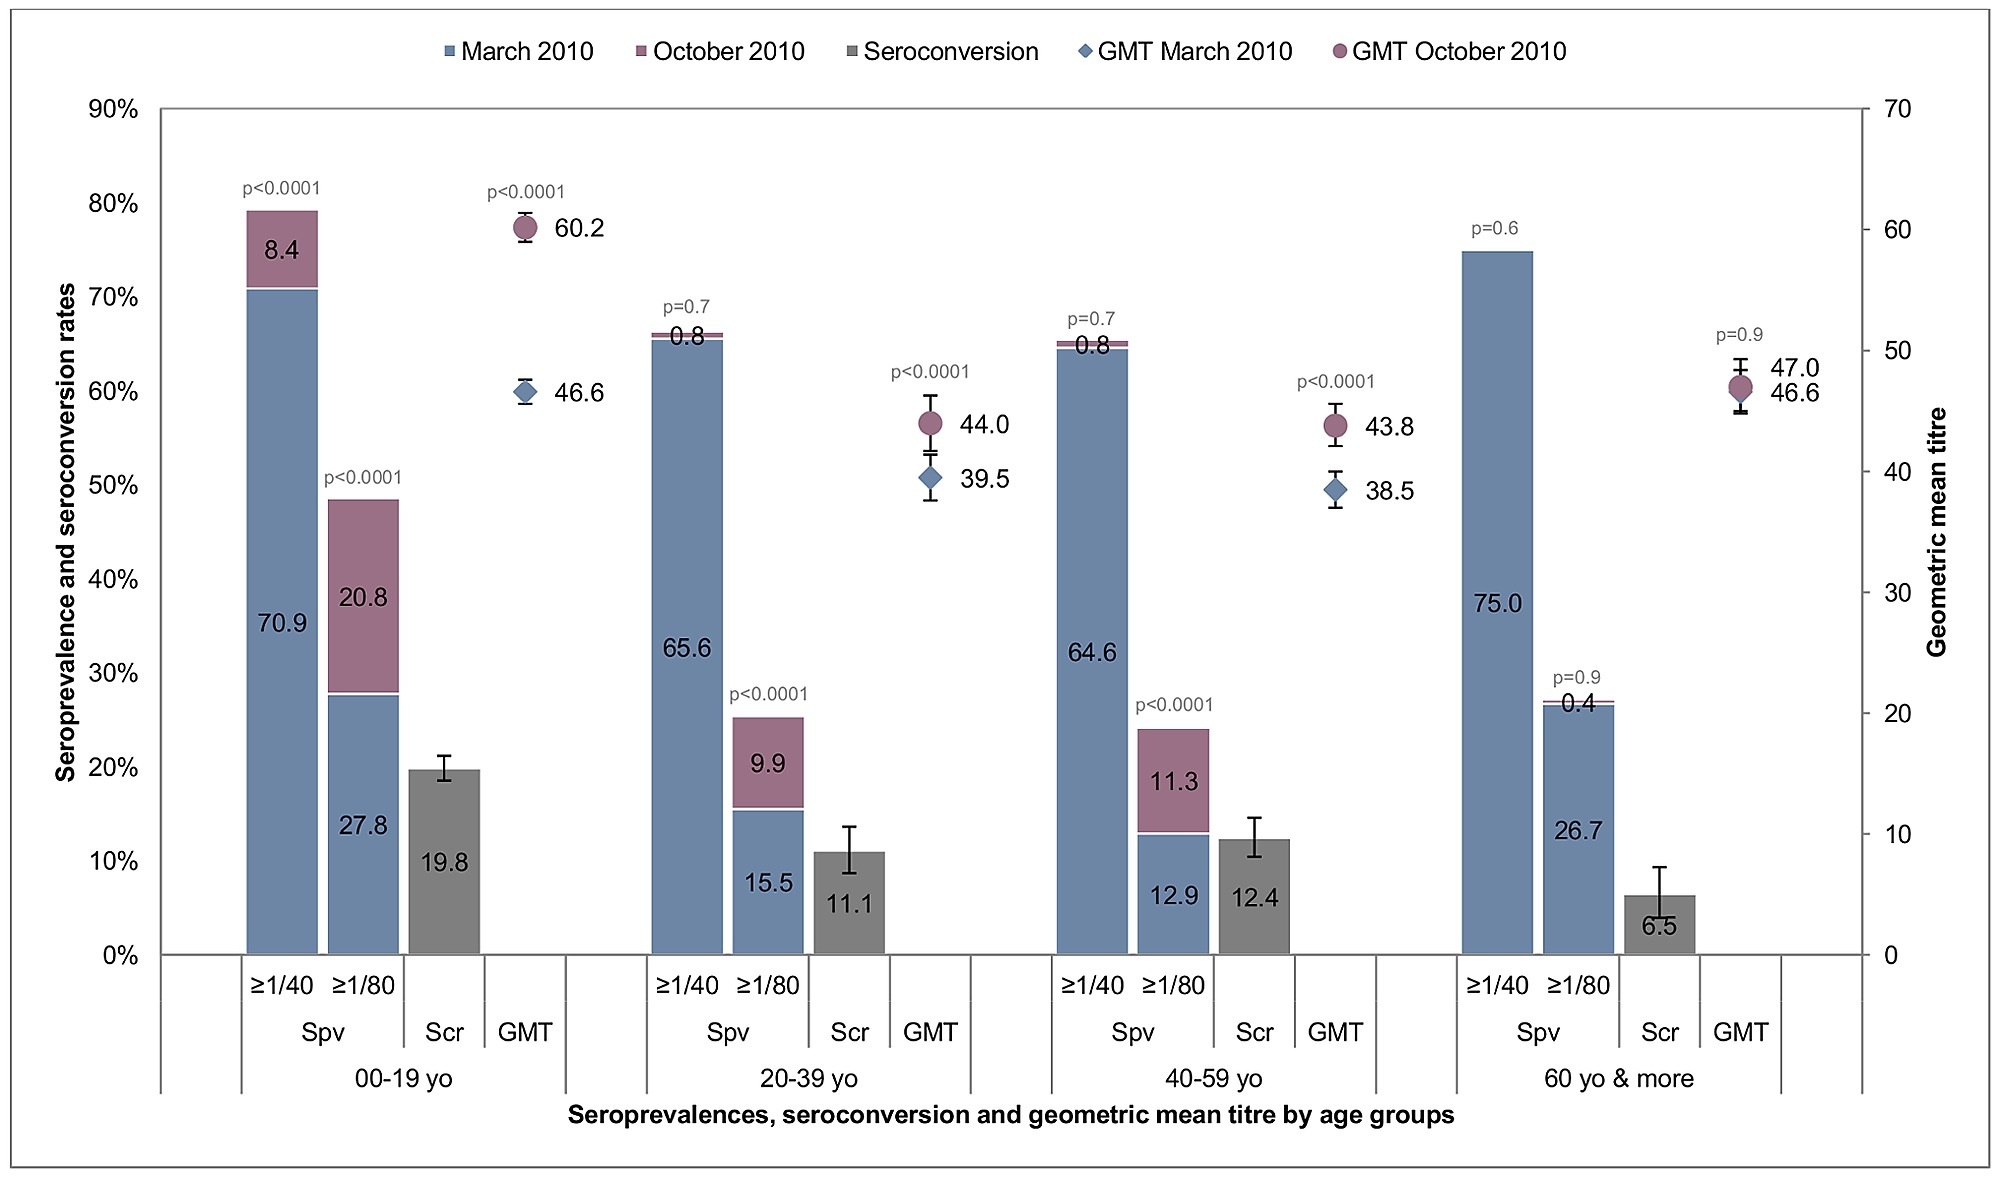 Seroprevalence, seroconversion rates and GMT in March and